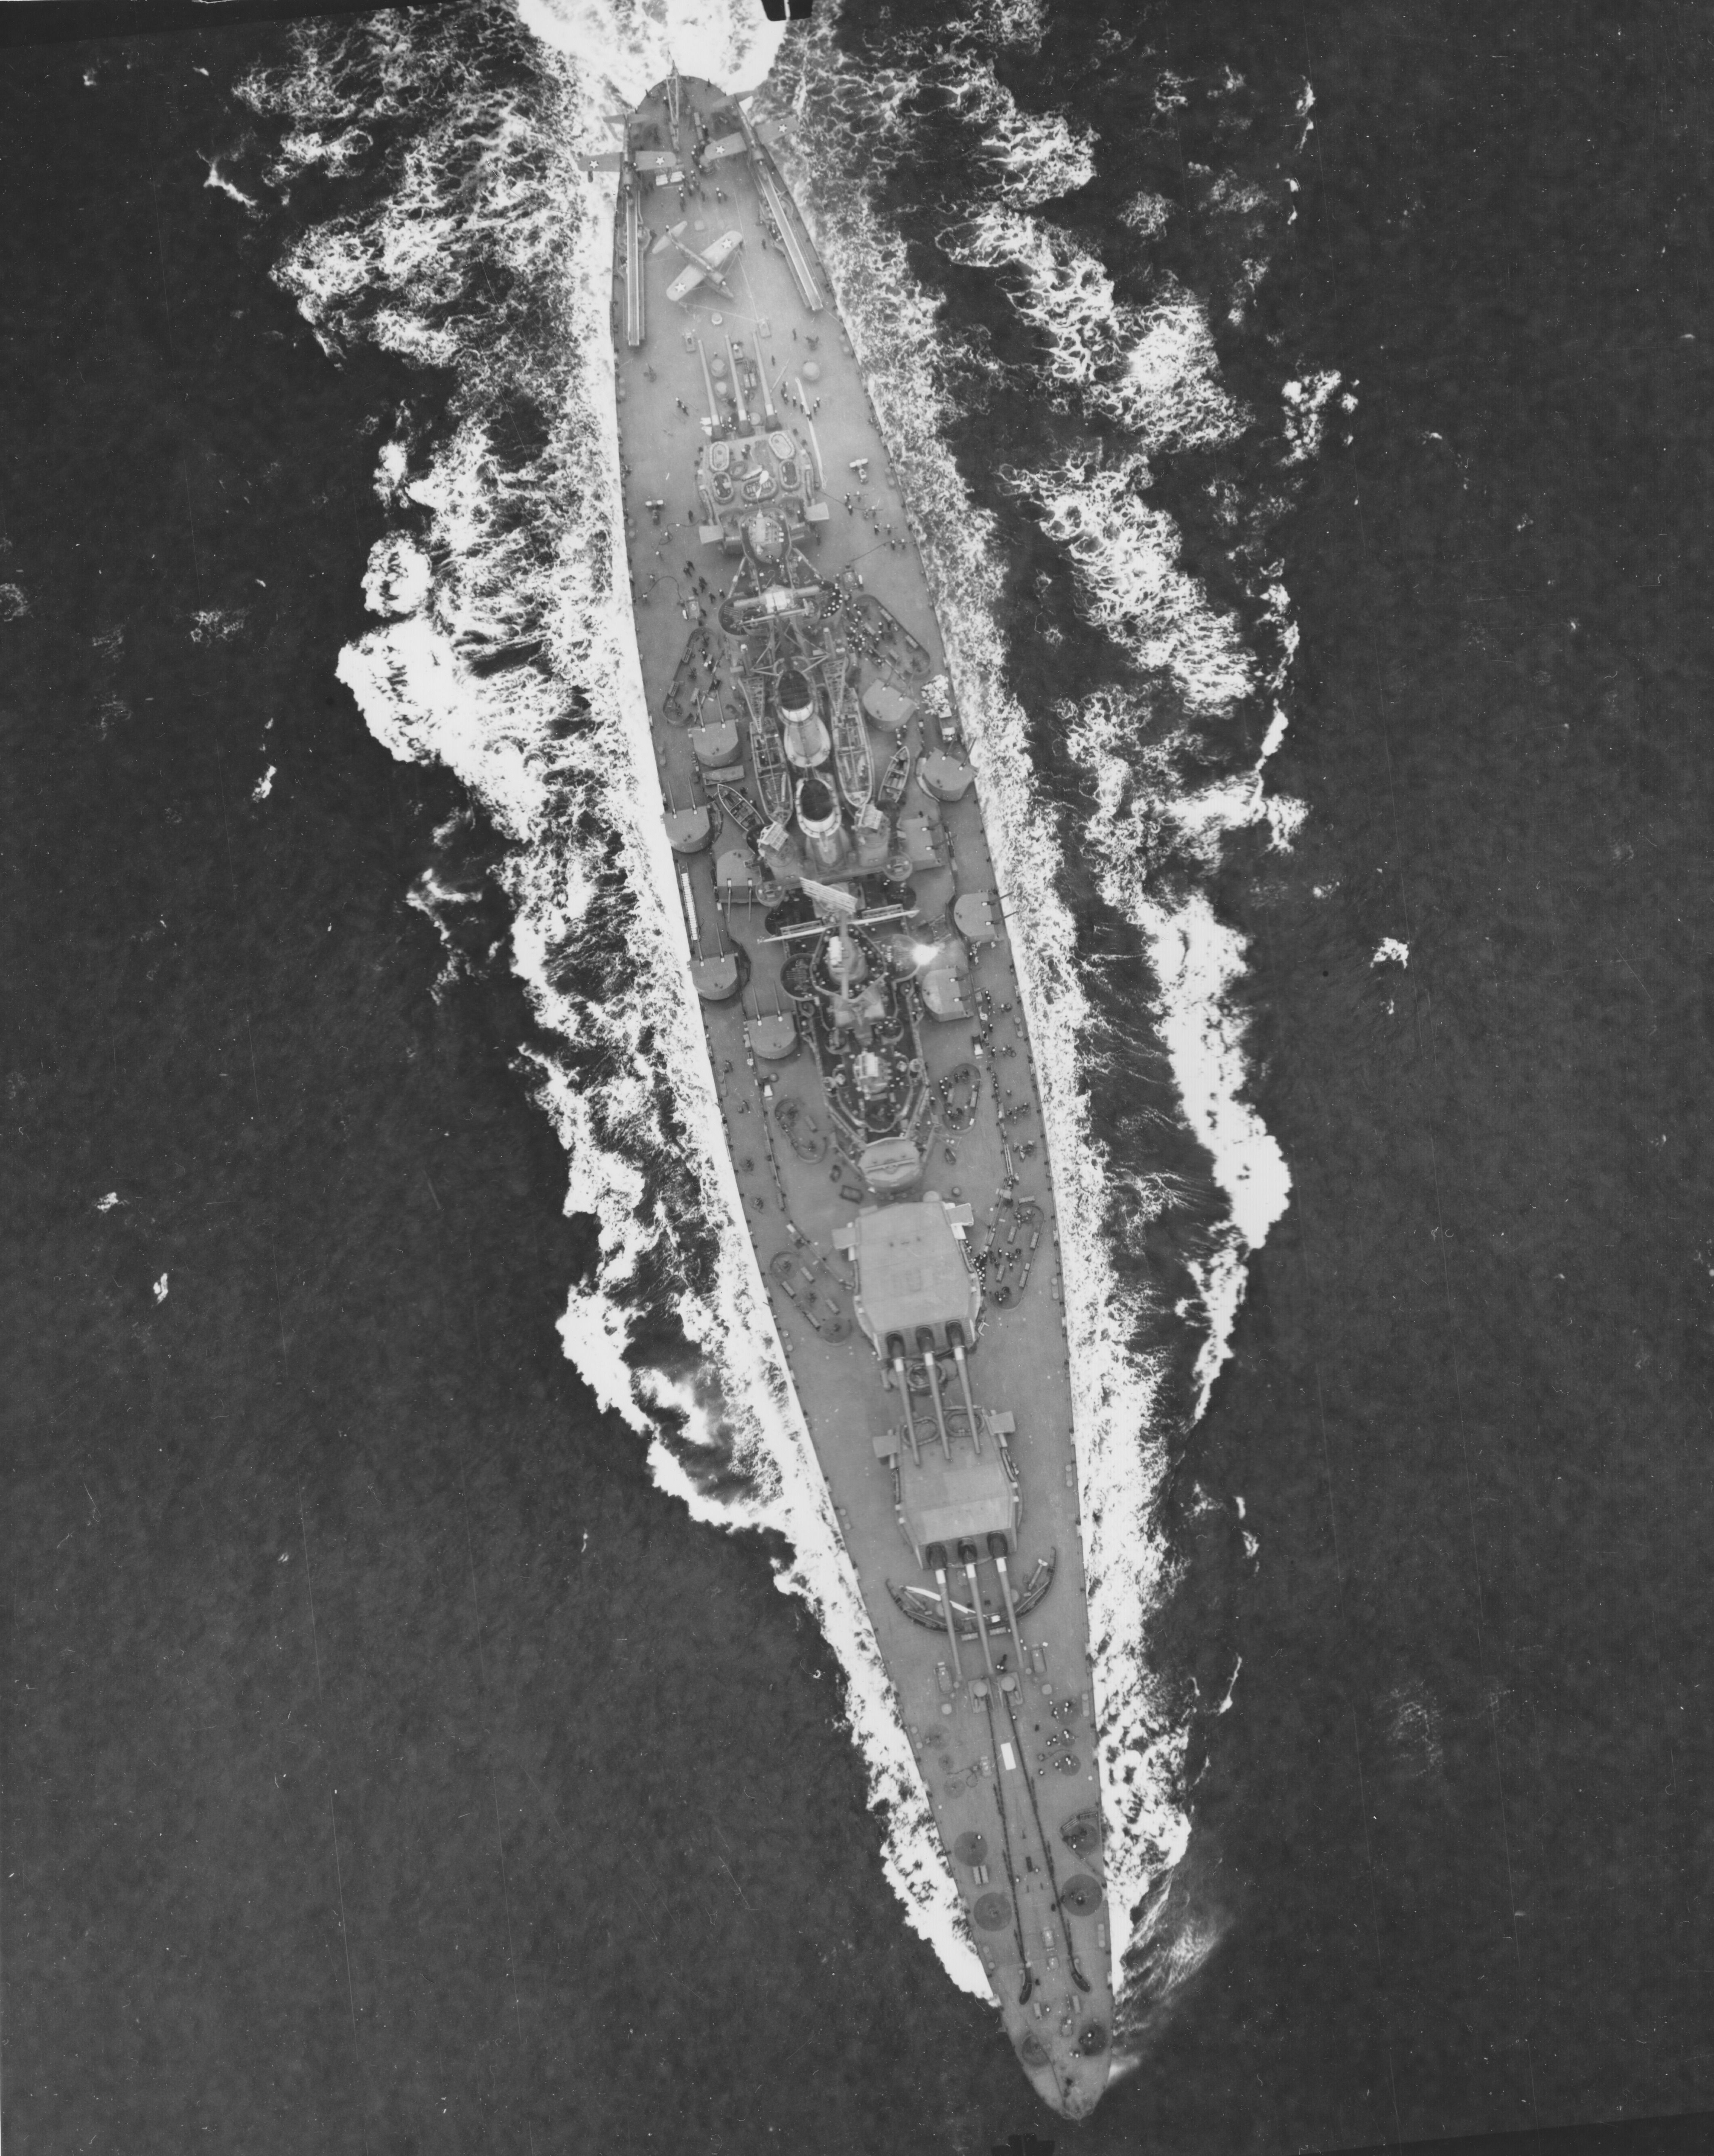 A majestic aerial photo of USS North Carolina (BB-55) demonstrating all the fine details of her armament and general disposition of superstructures. Despite her size, she is as handsome as she is powerful. A splendid view captured on April 17, 1942.